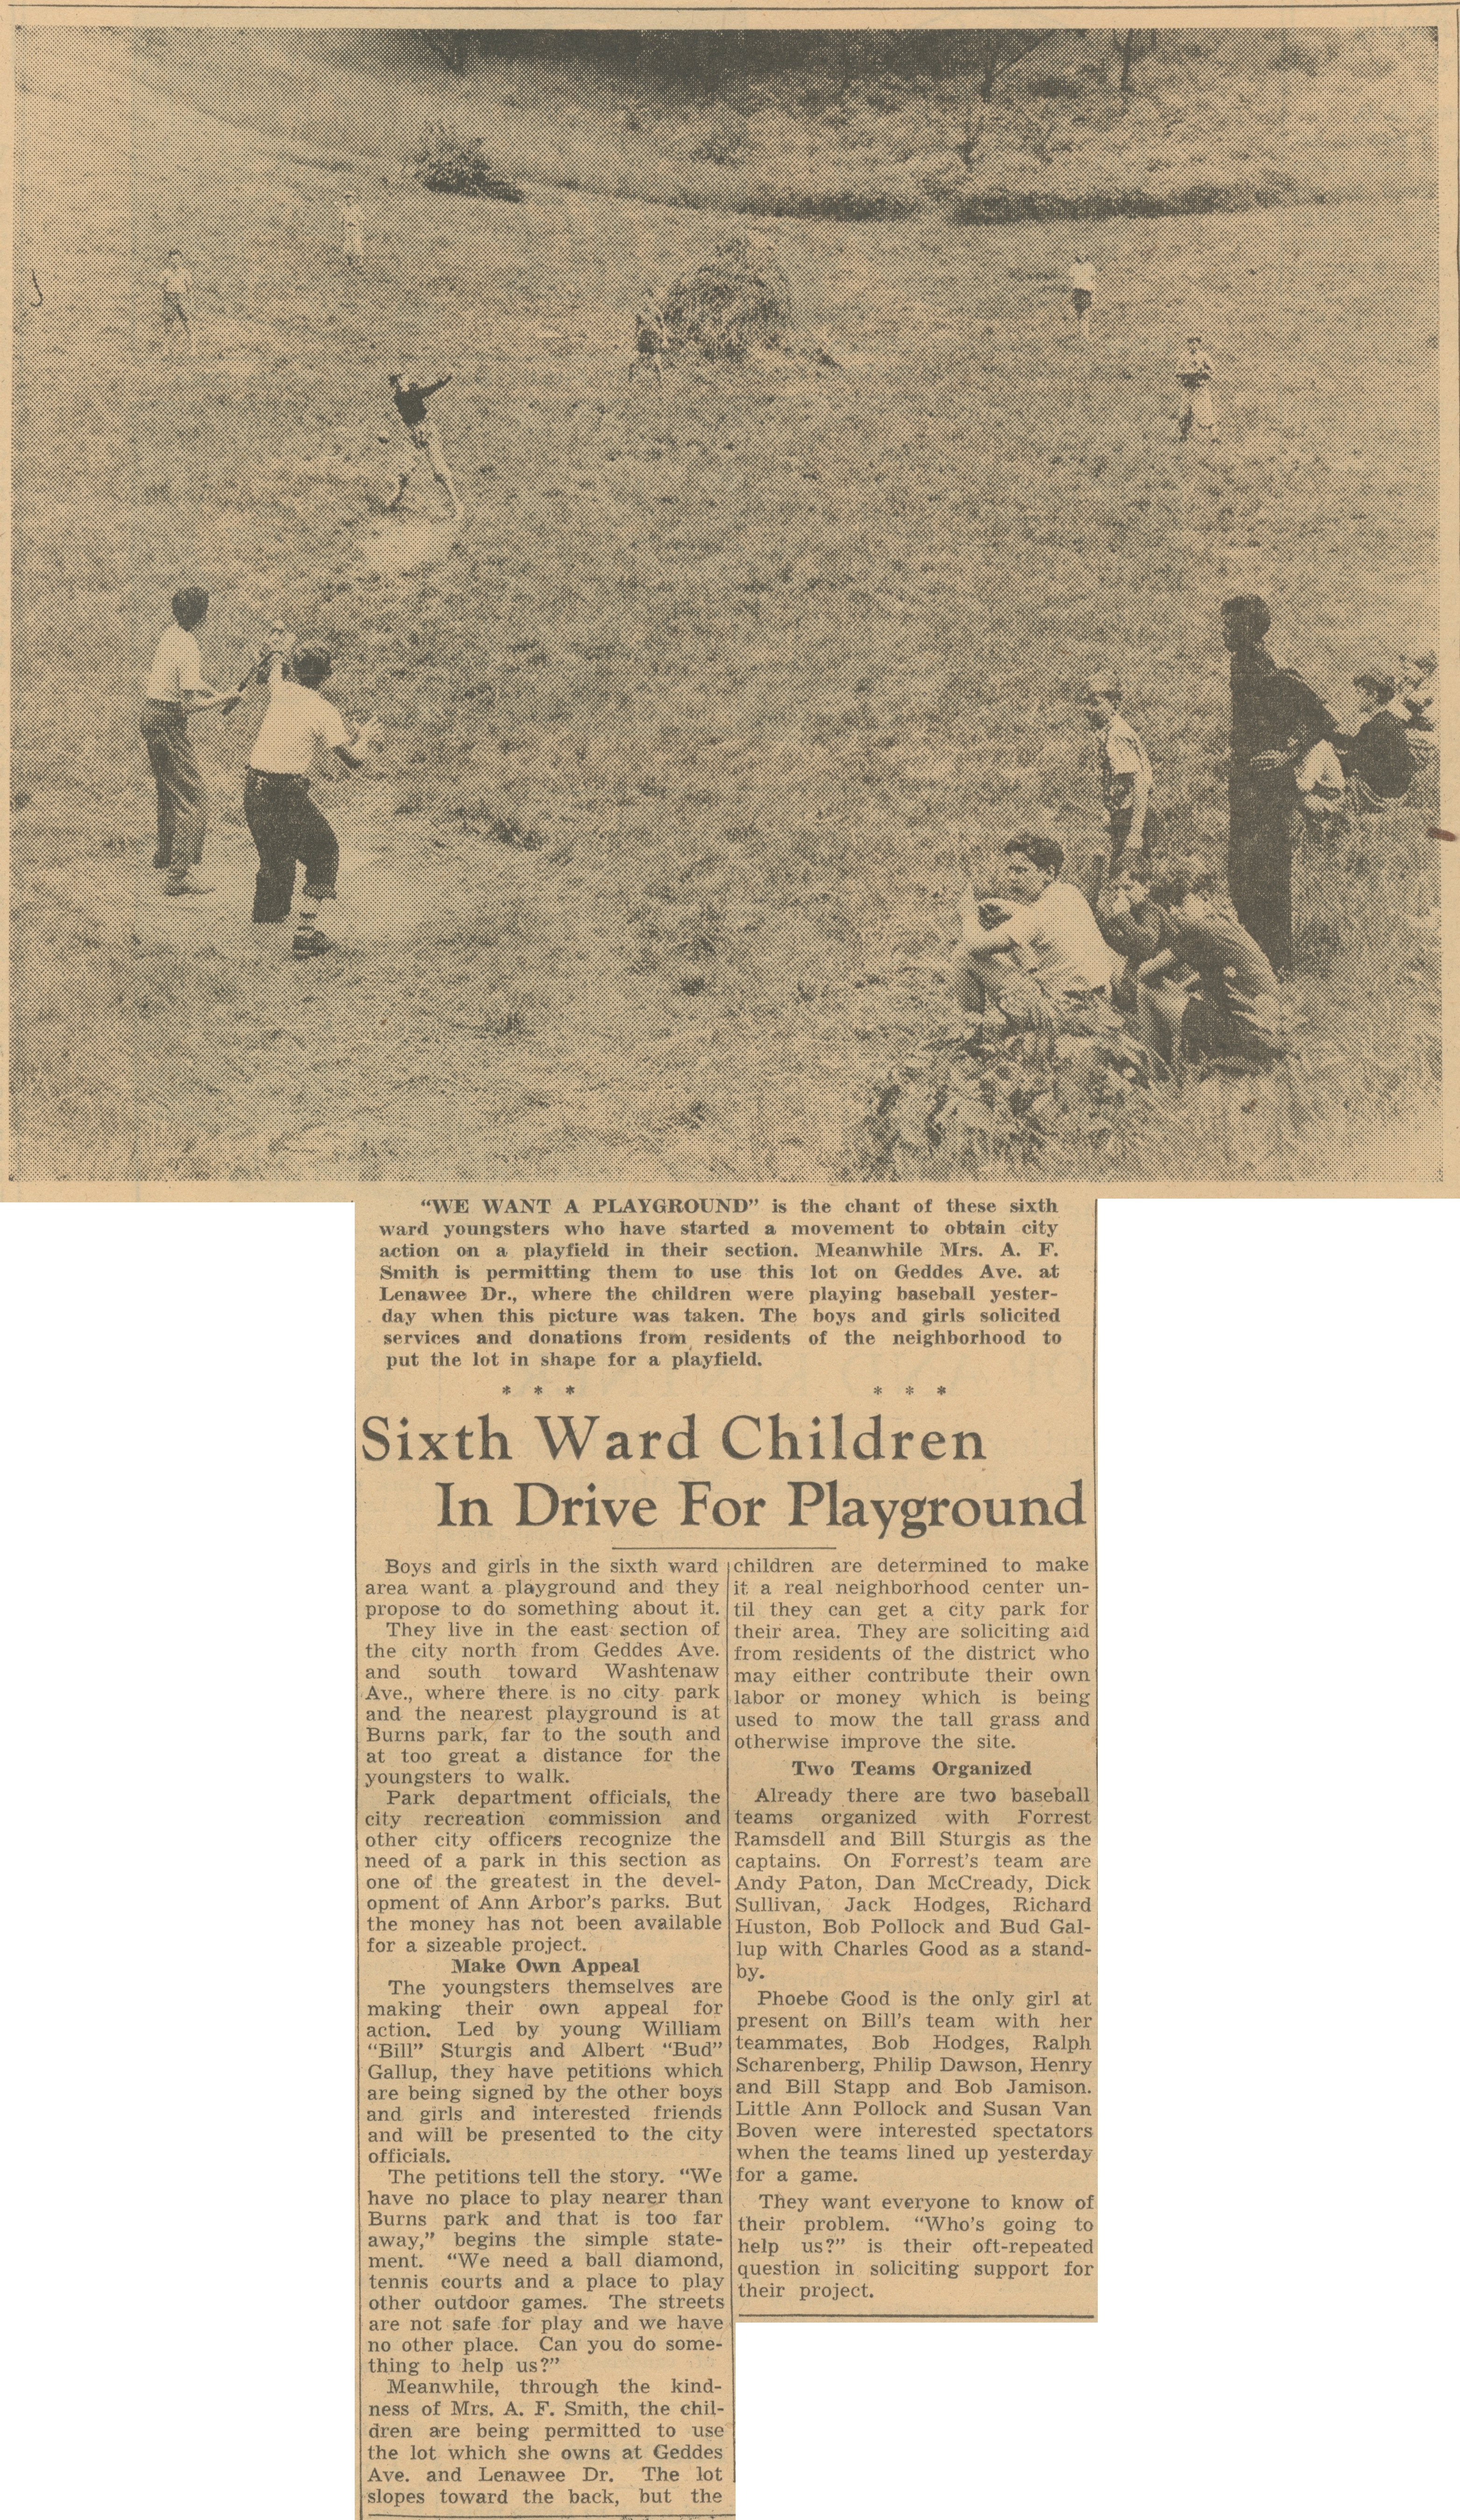 Sixth Ward Children In Drive For Playground image